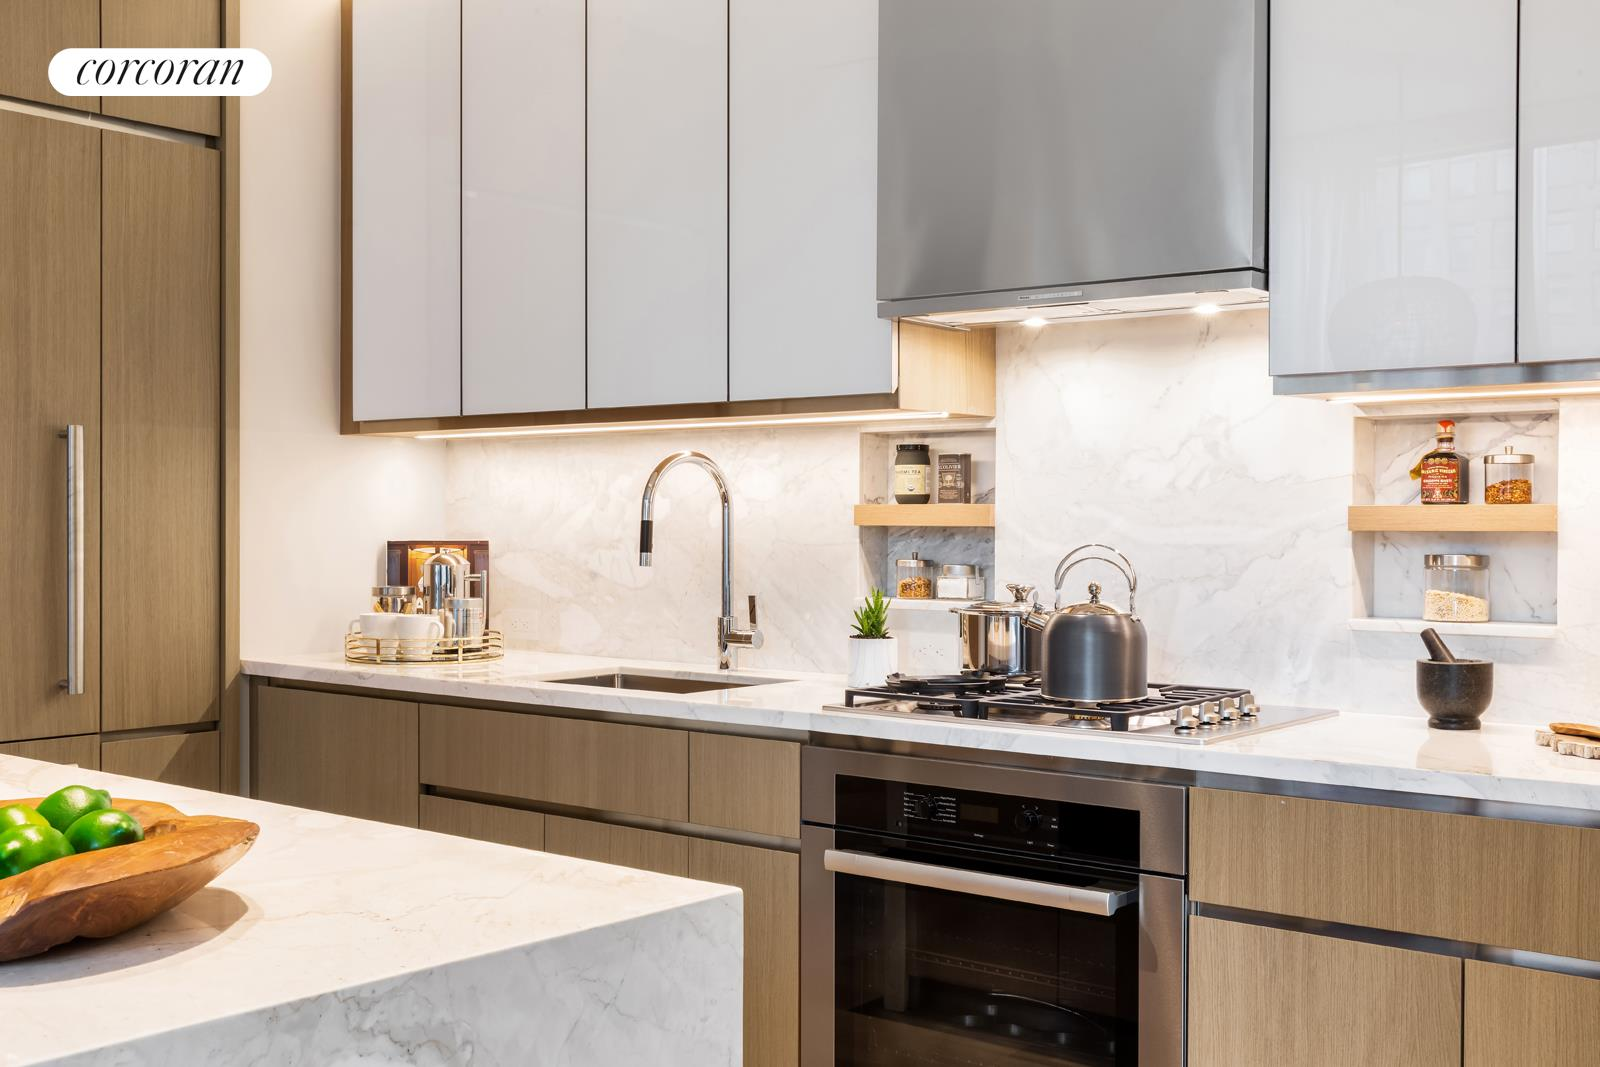 Apartment for sale at 277 Fifth Avenue, Apt 17C